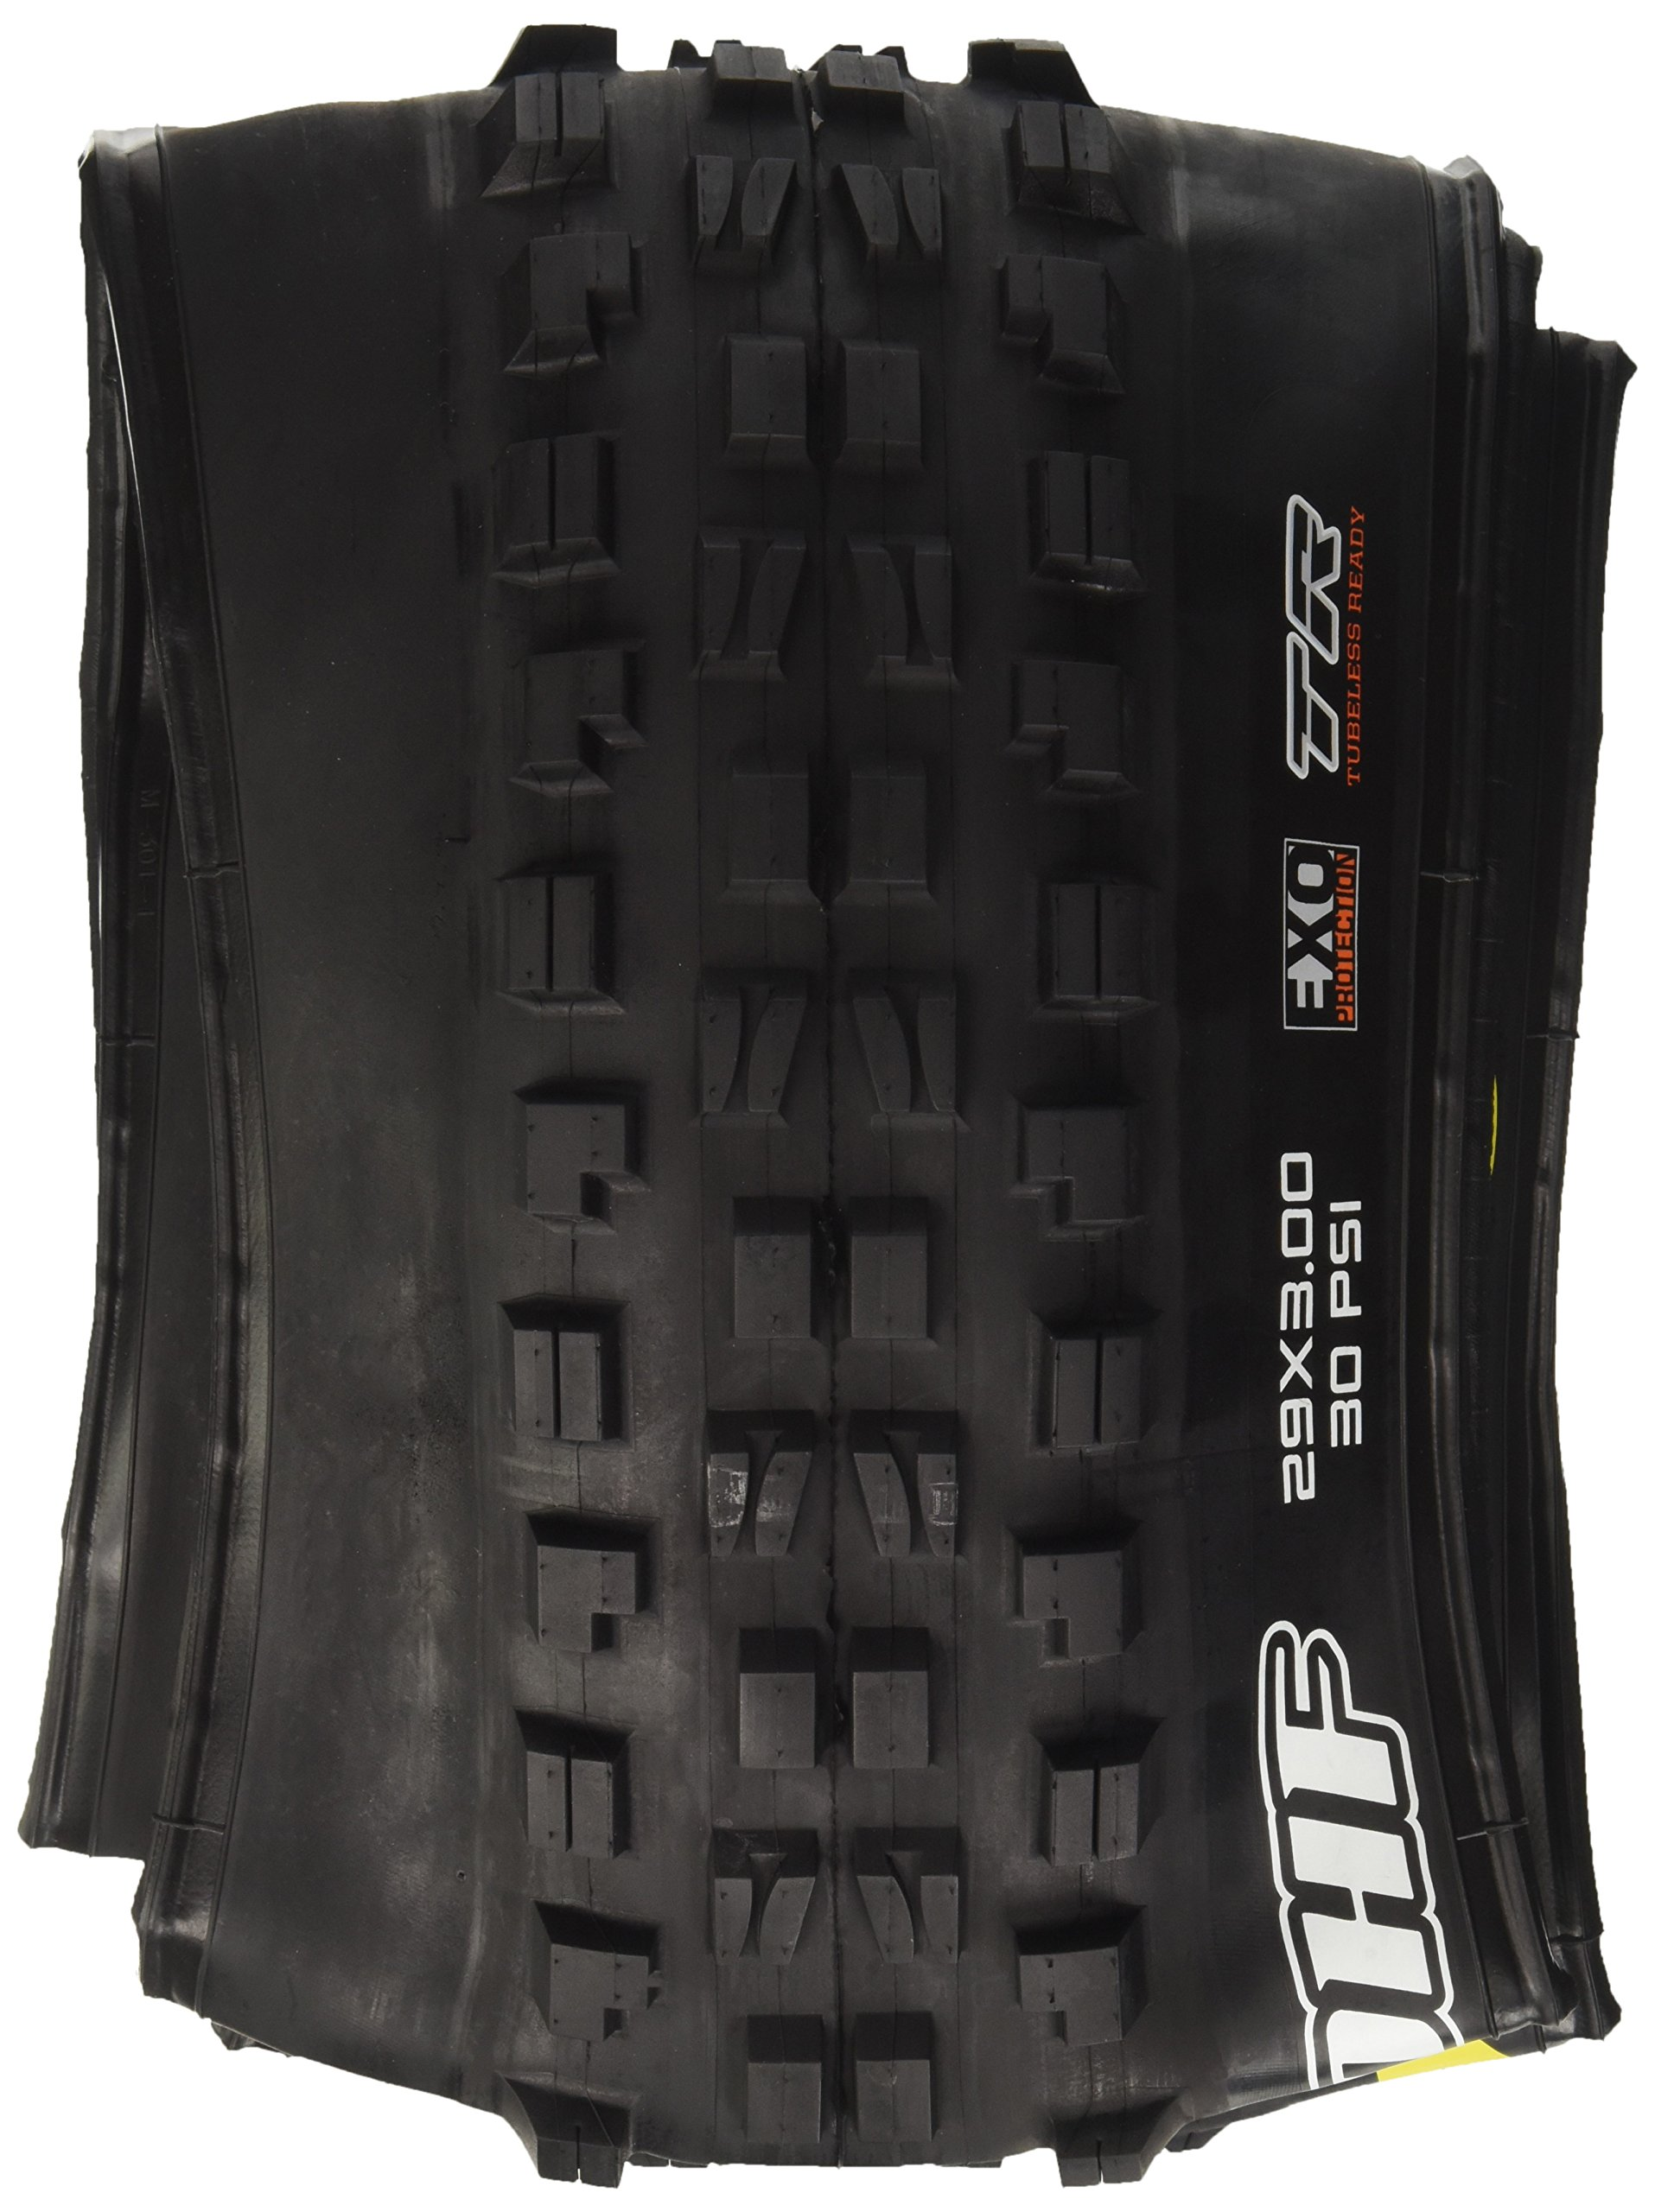 Maxxis Minion DHF 29x3.0'' Tire 60tpi, Dual Compound, EXO Casing, Tubeless Ready, Black by Maxxis